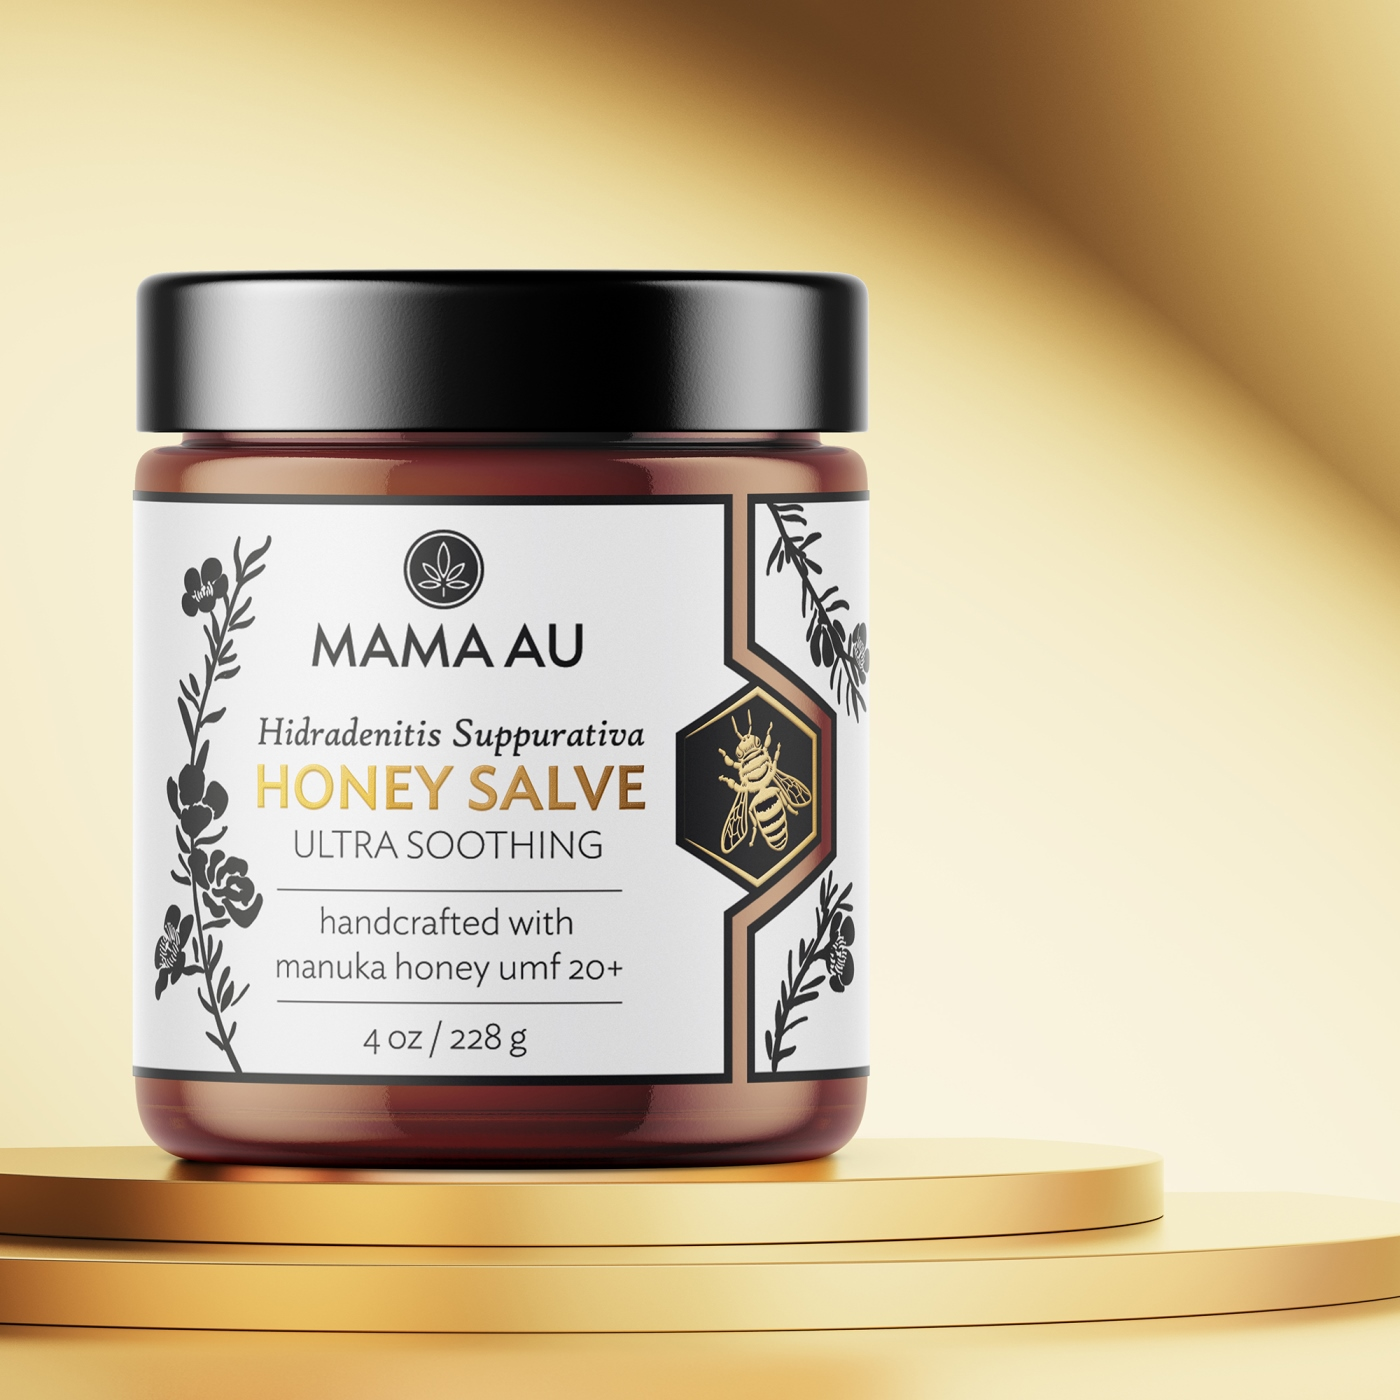 Hamster & Hammer Creates Label Designs for the Mama AU Brand